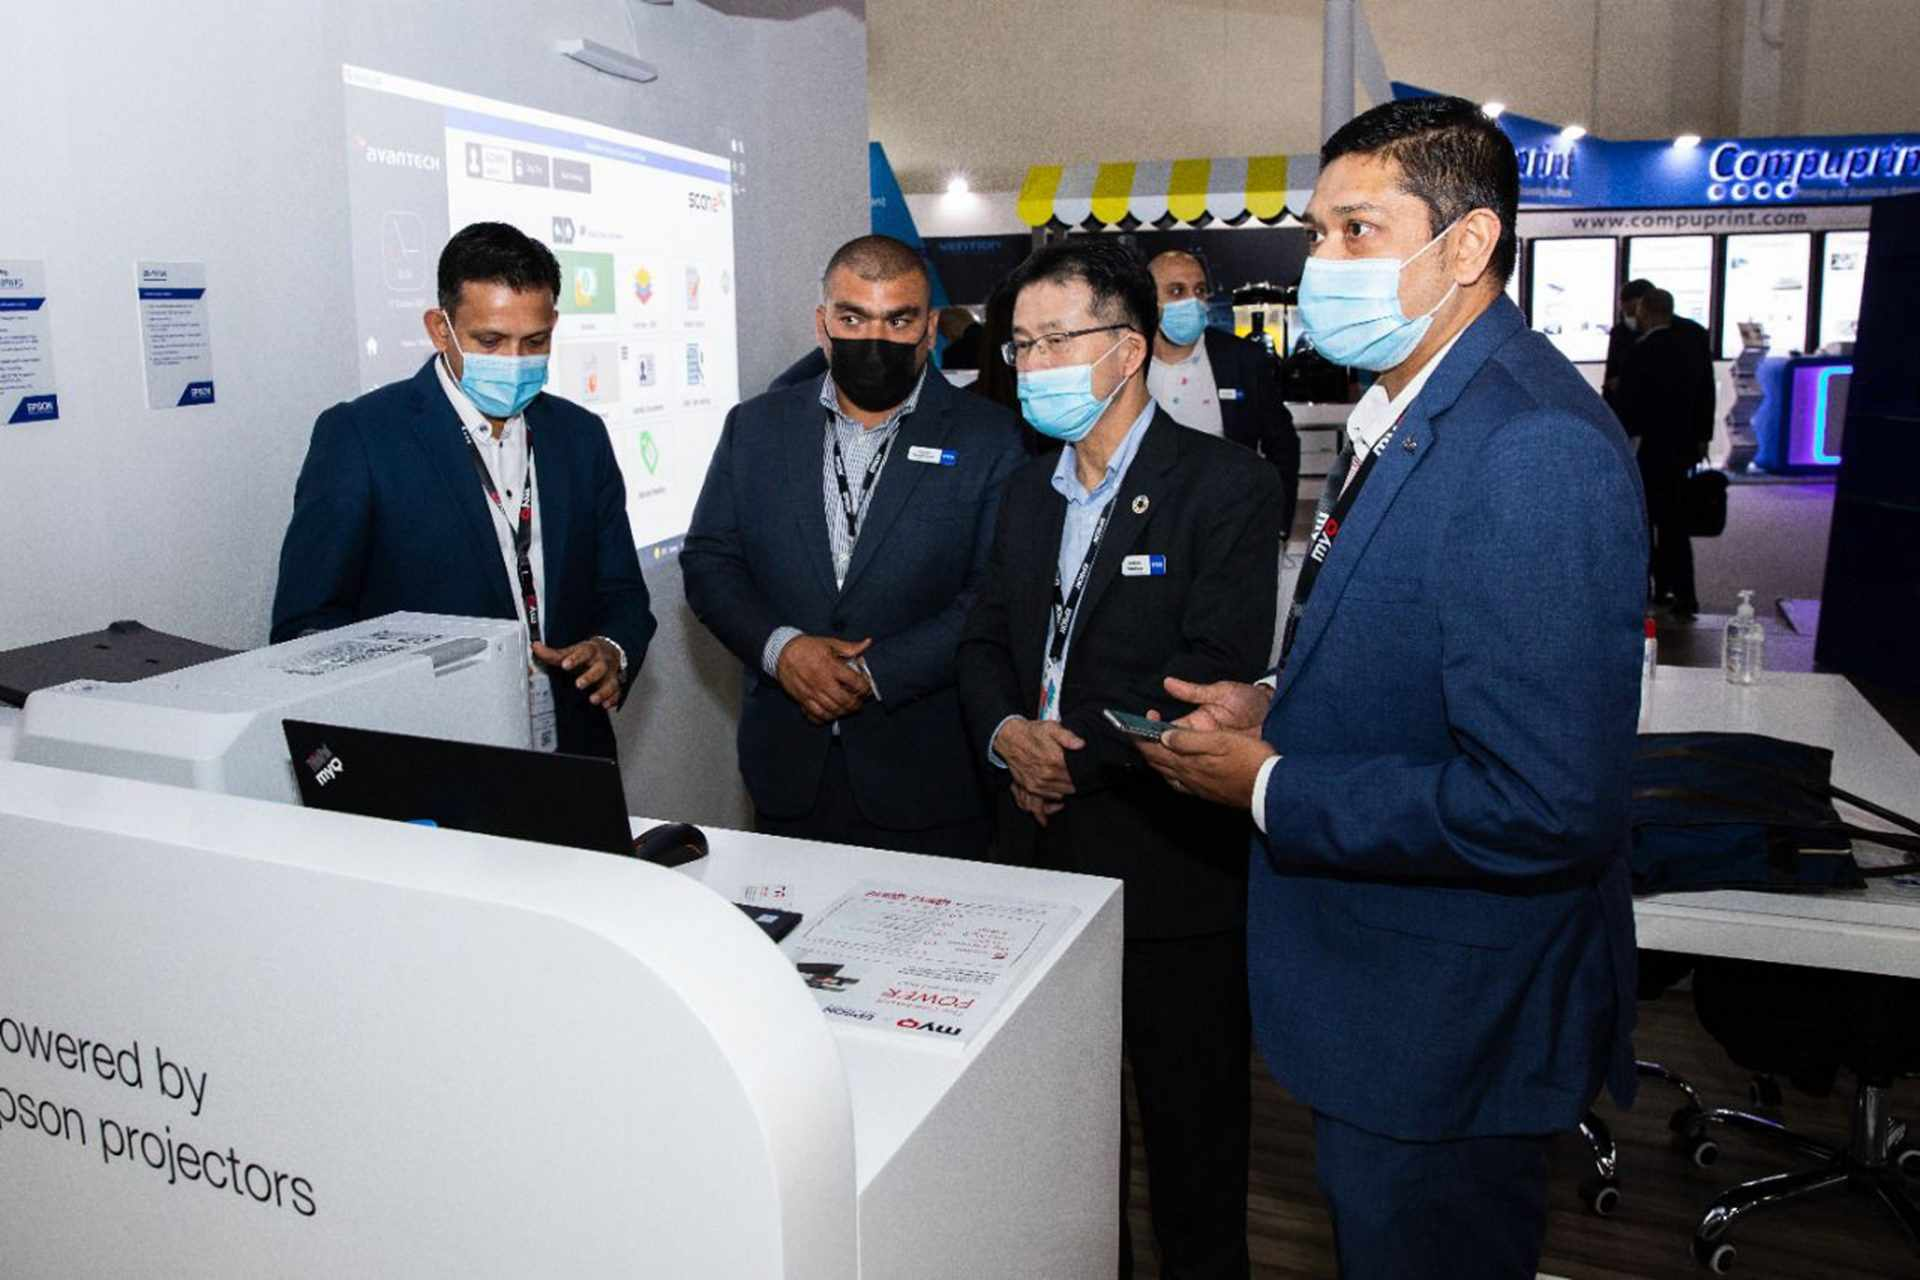 solutions, epson, middle, gitex, business,